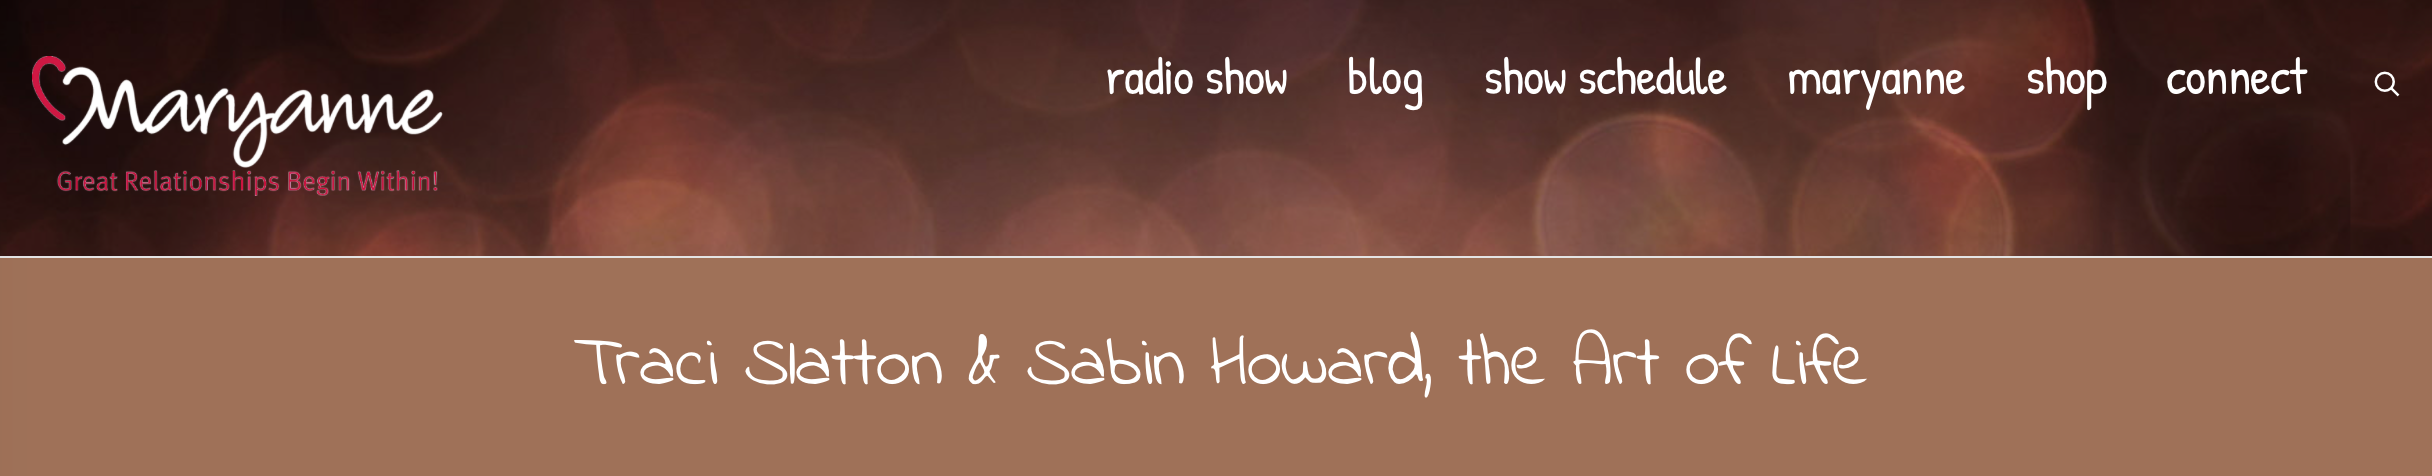 CATCH SABIN HOWARD & ME 1:00 PM ET 11/10 ON THE POWER OF WE